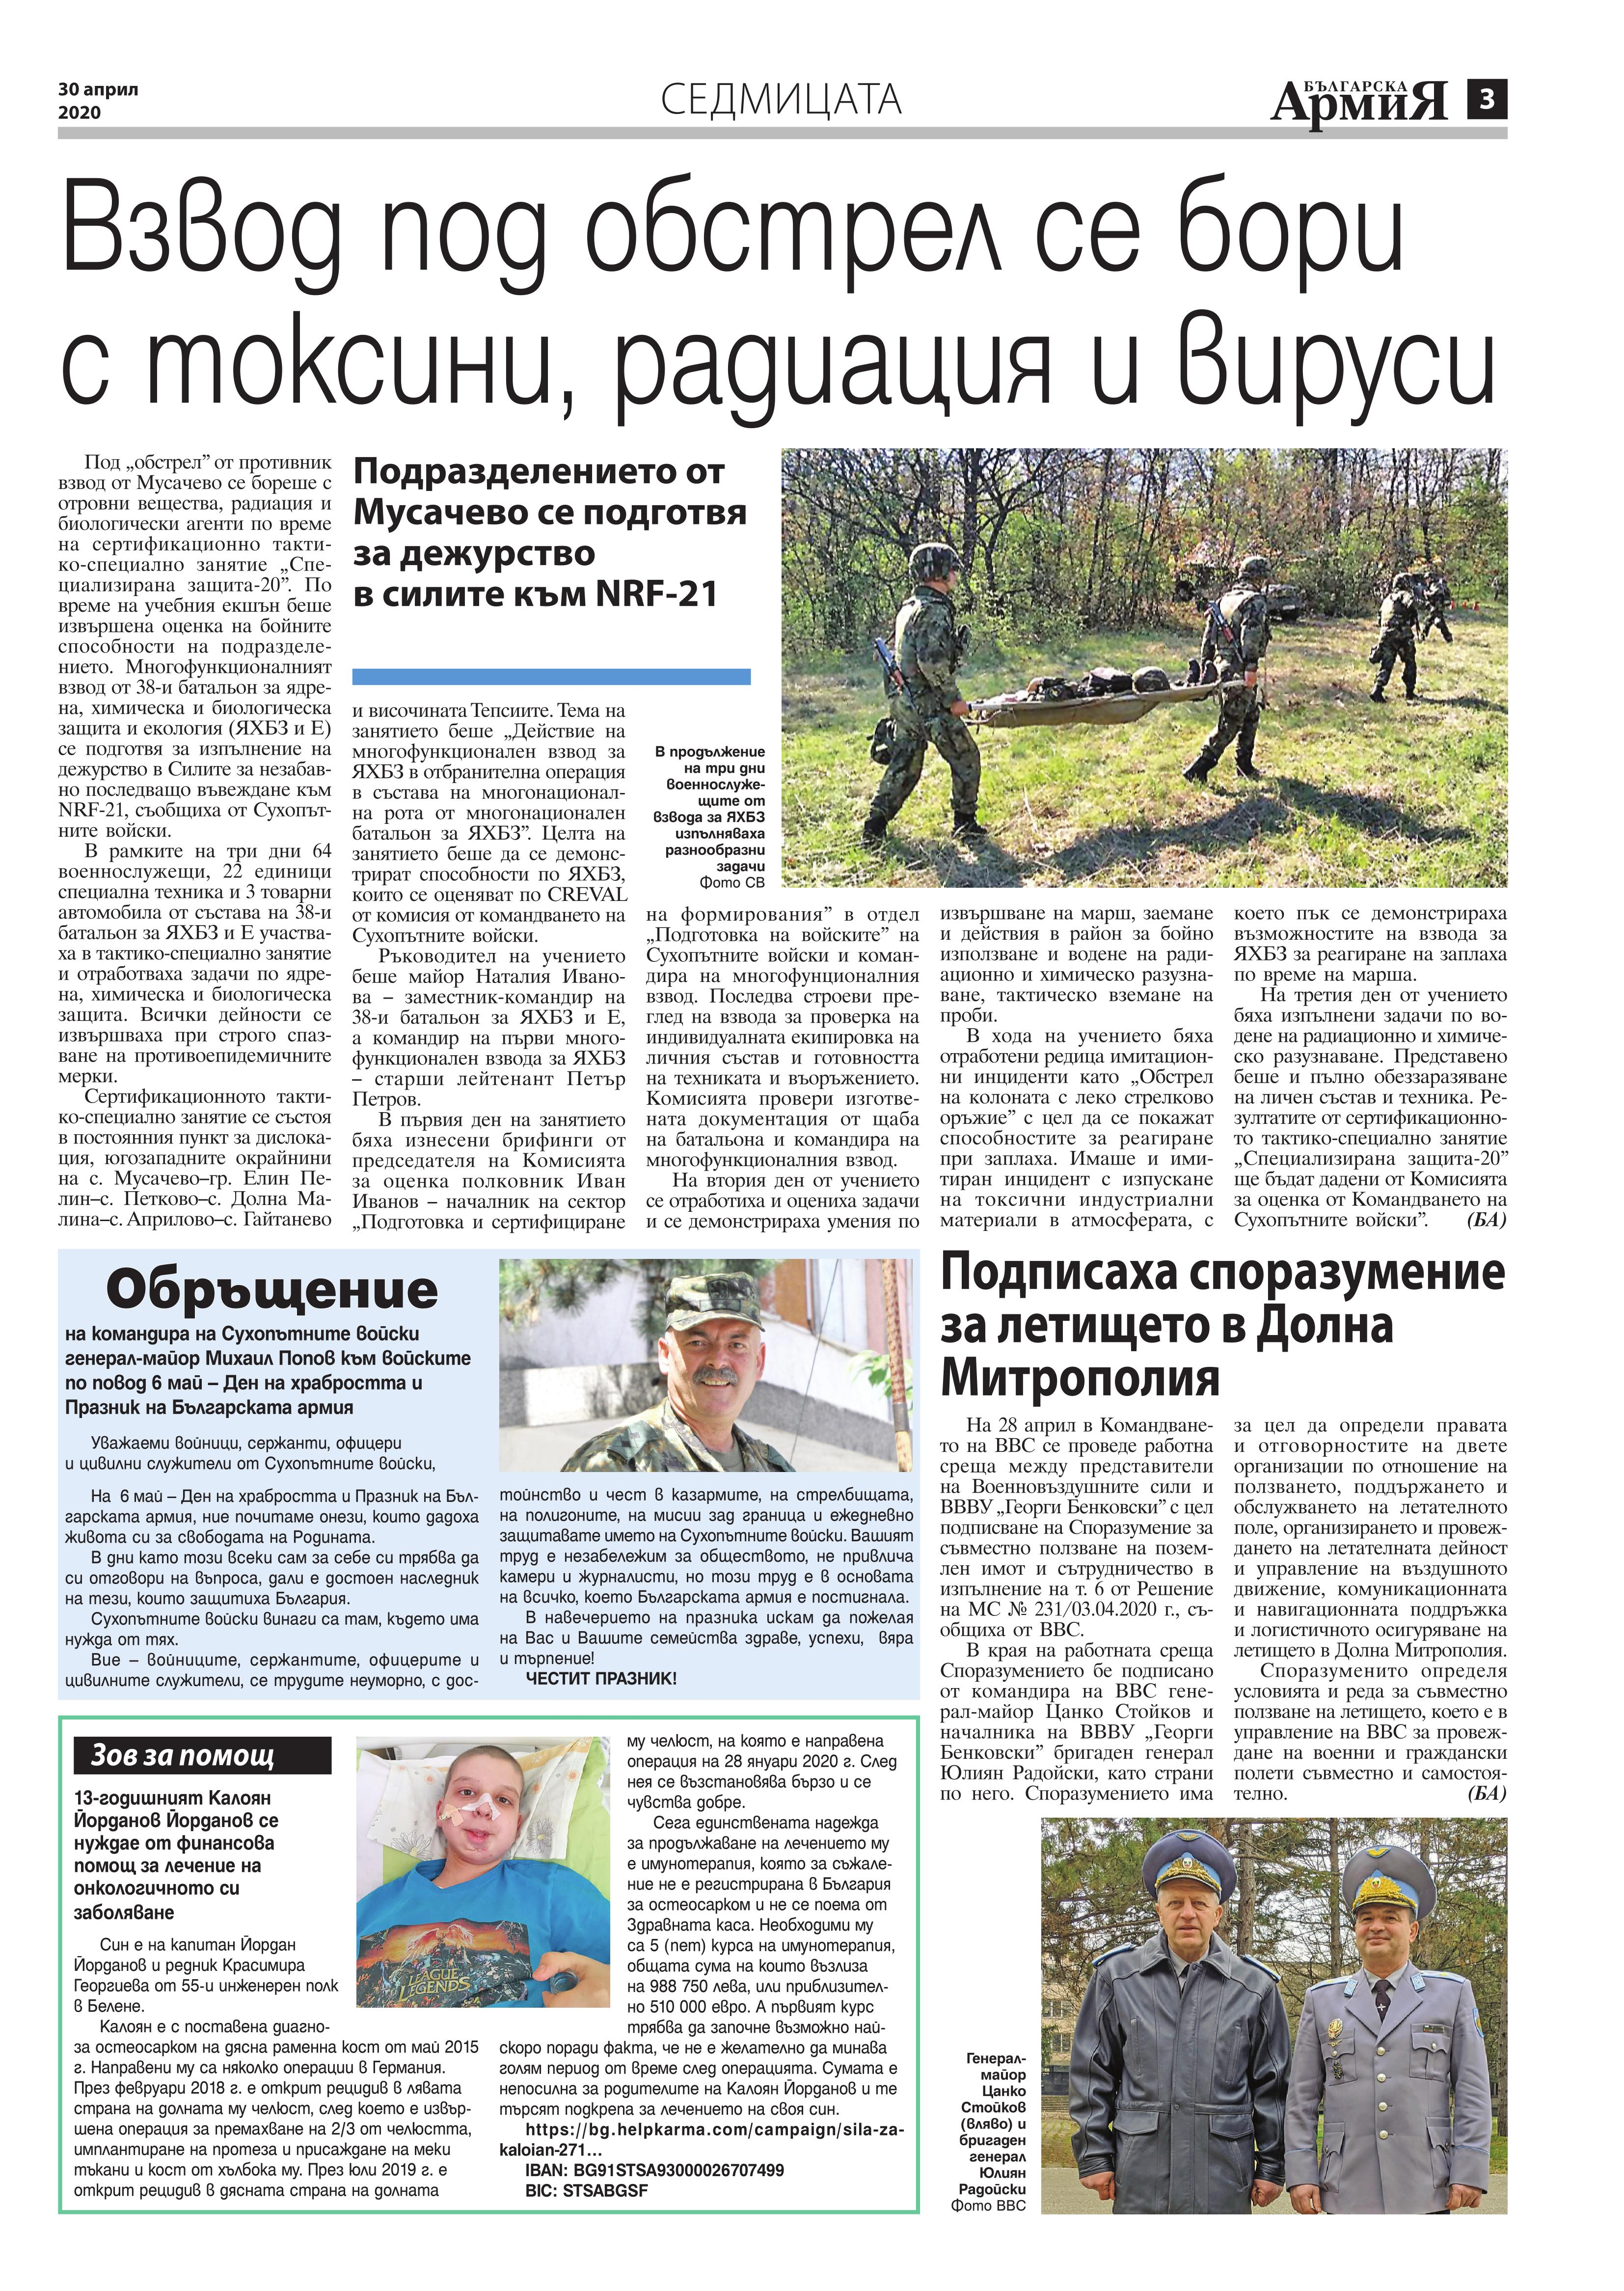 https://www.armymedia.bg/wp-content/uploads/2015/06/03.page1_-134.jpg